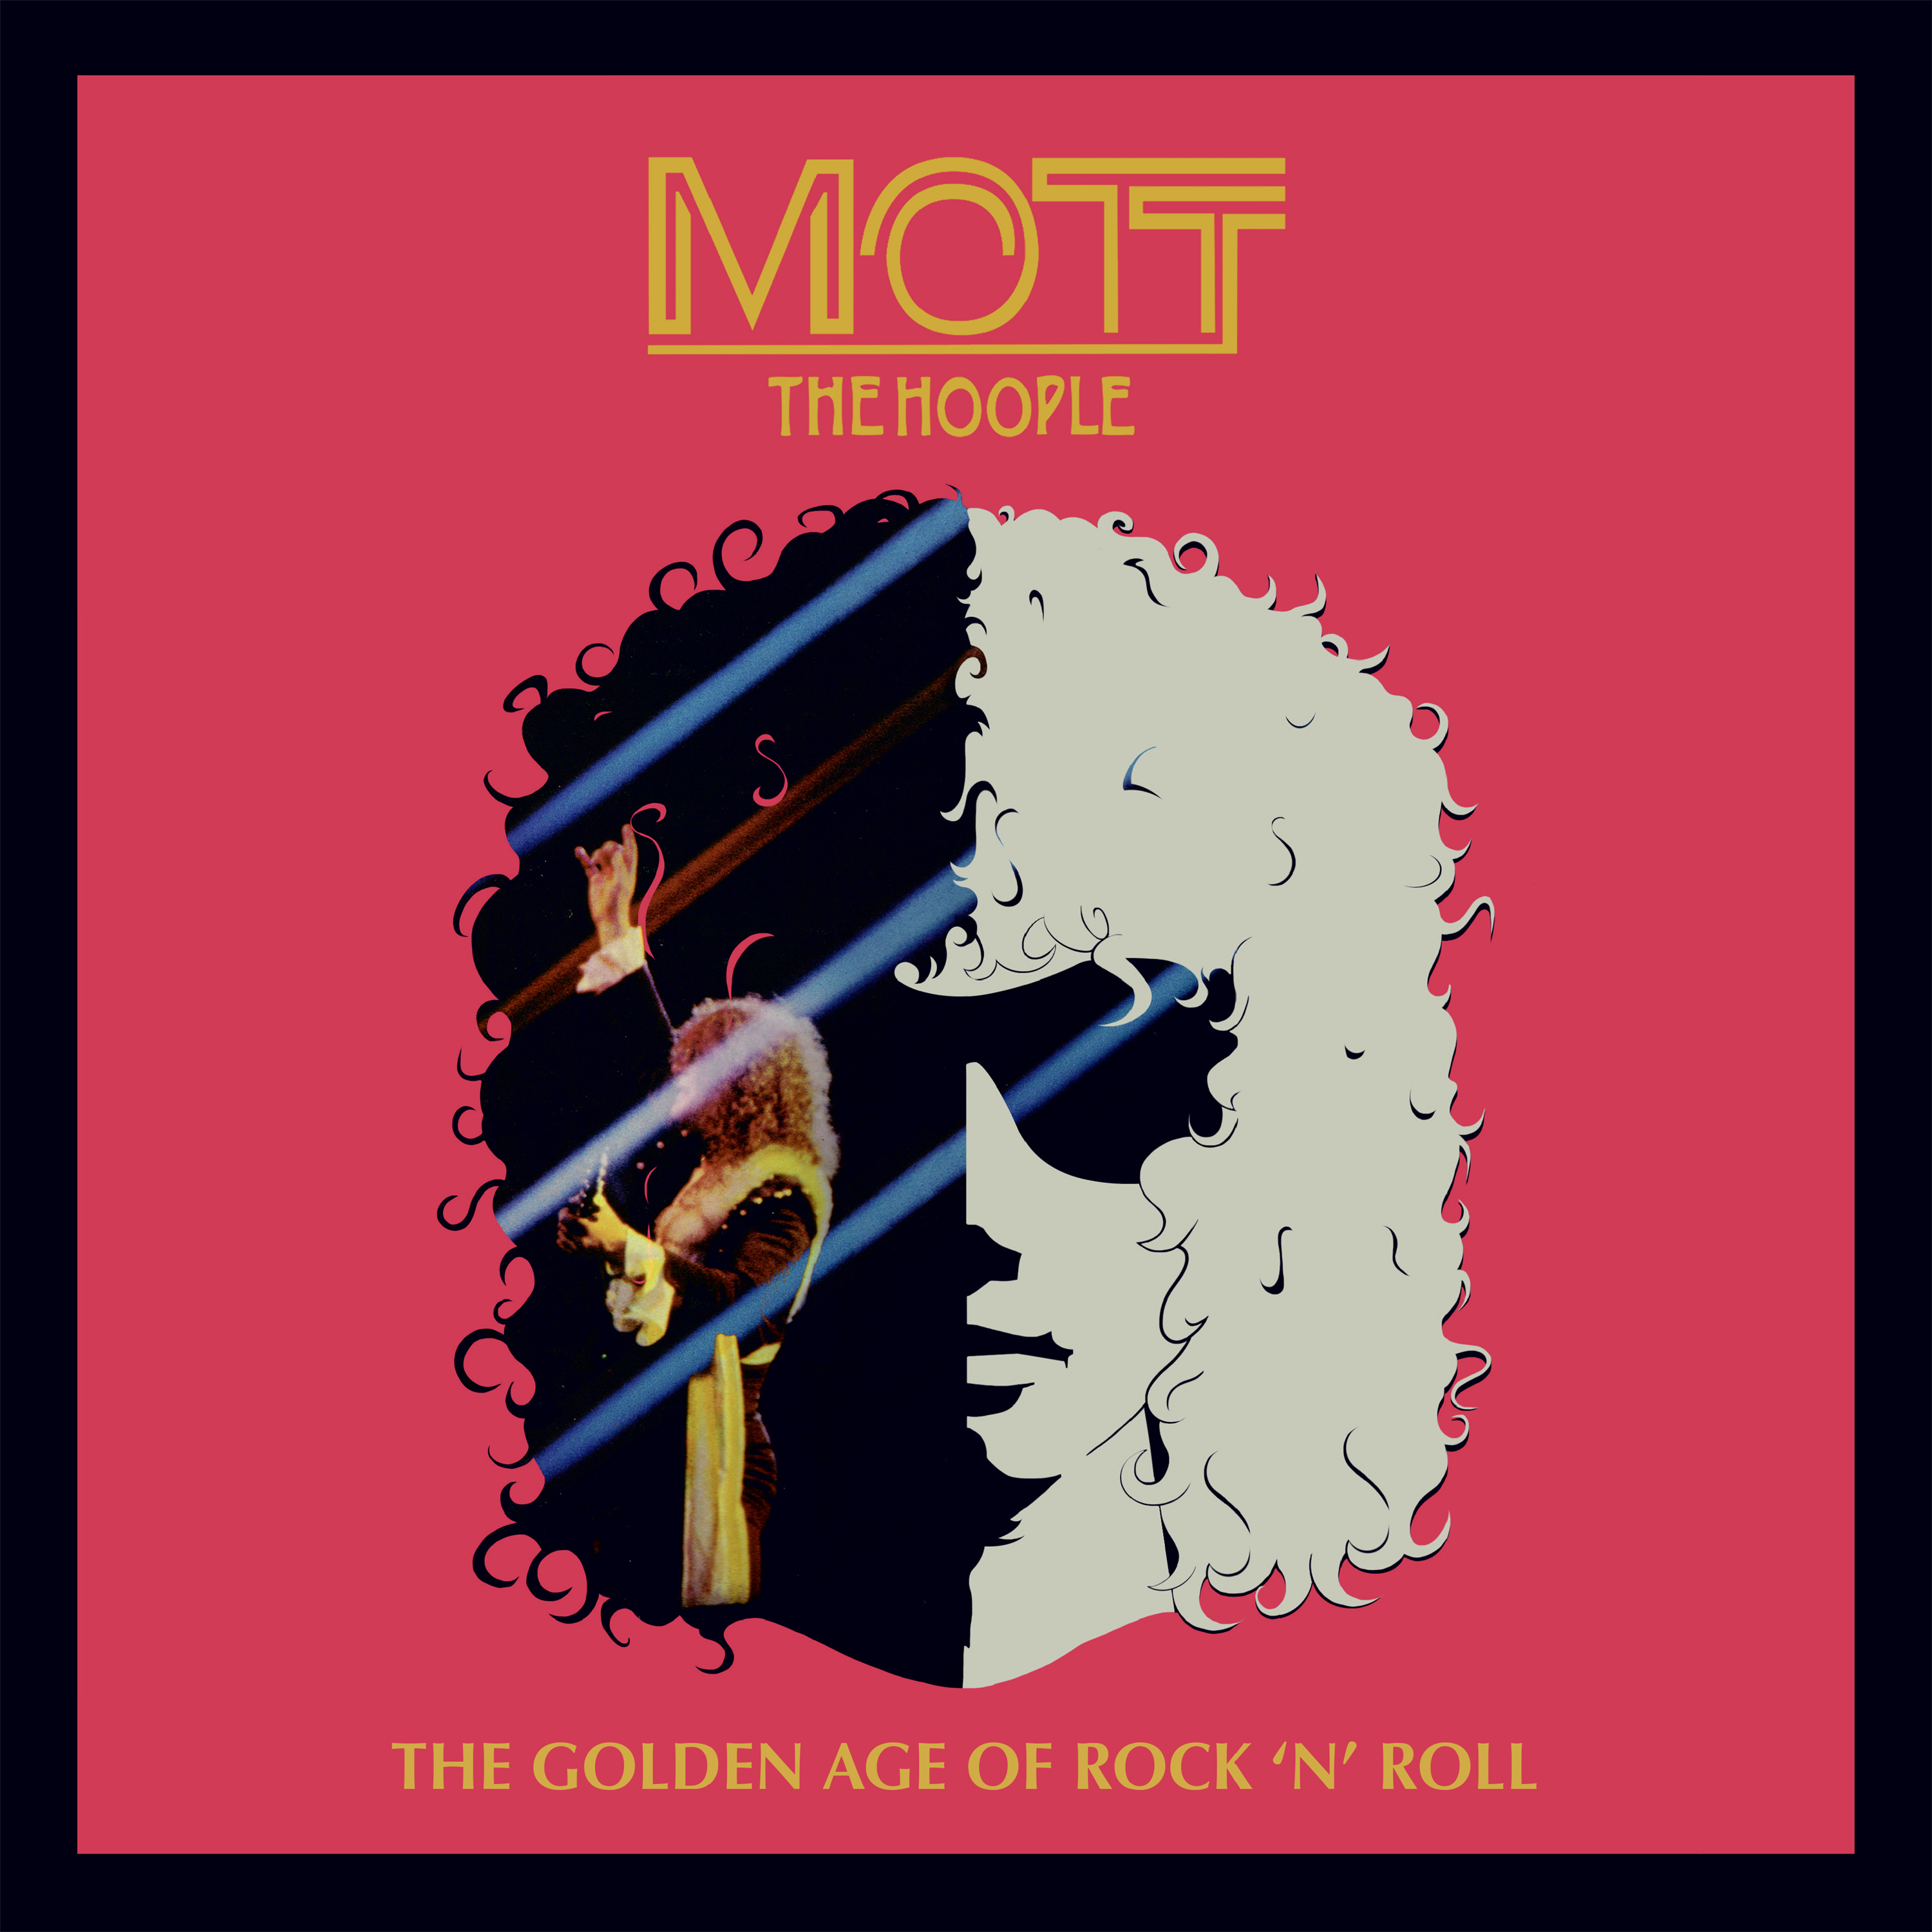 Mott The Hoople - The Golden Age of Rock 'n' Roll [RSD Drops Sep 2020]